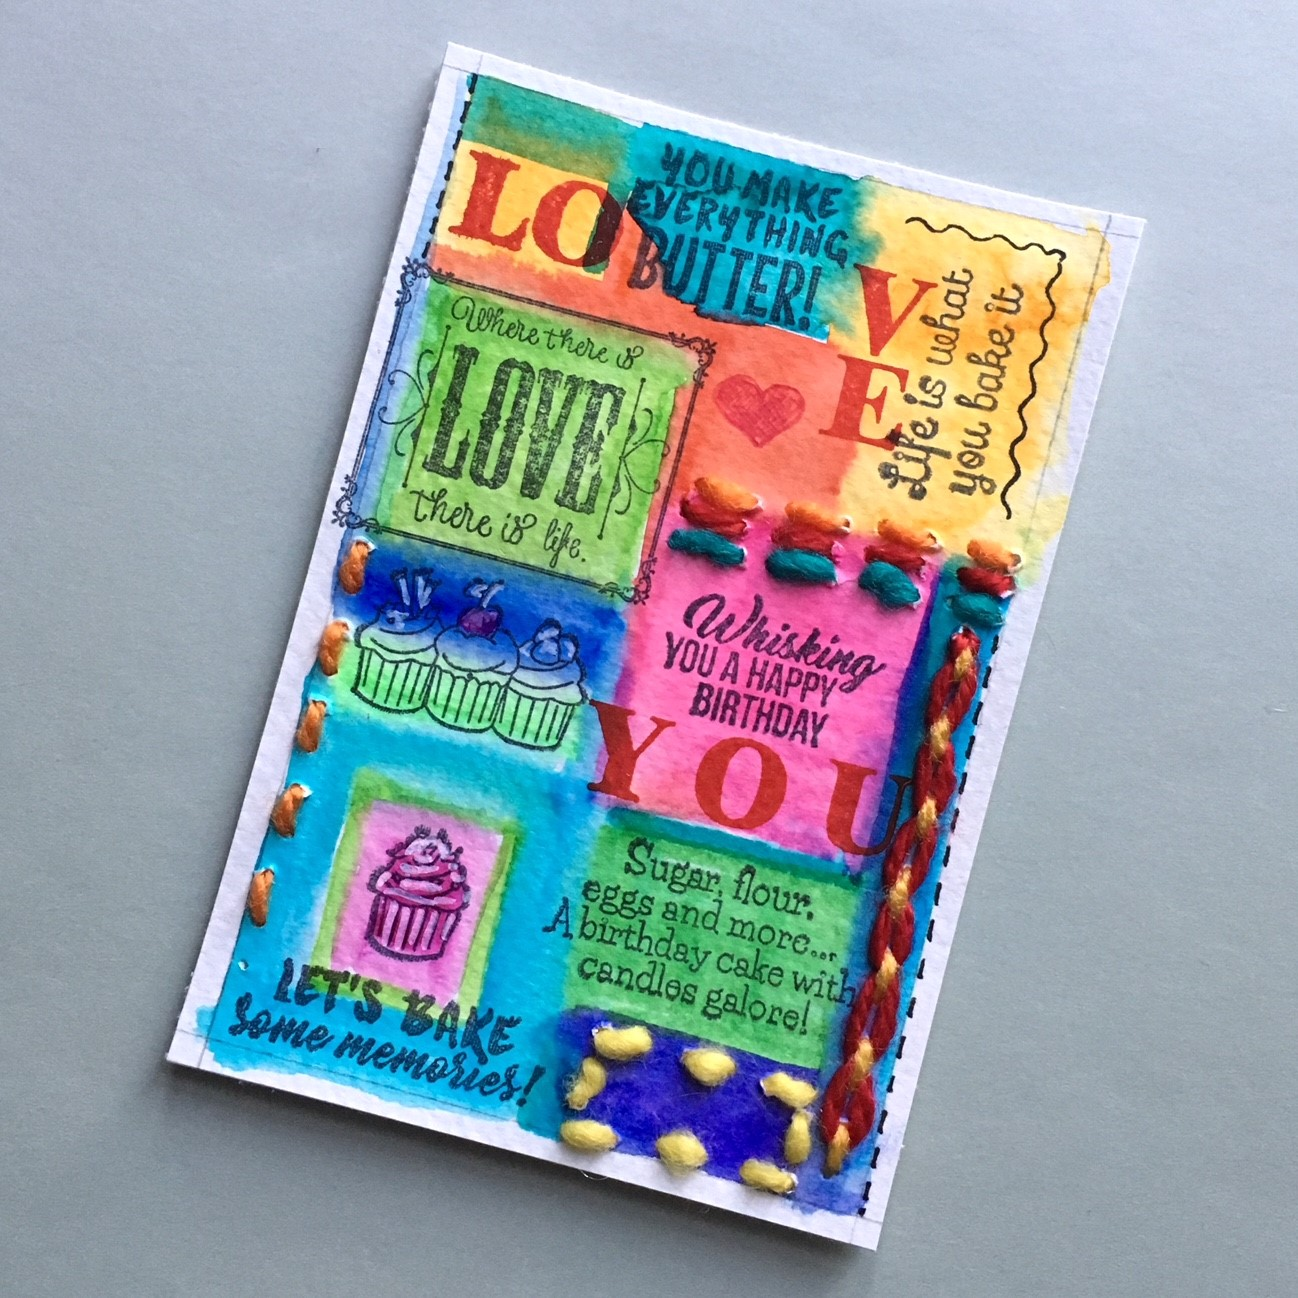 hippie style greeting card - the stamped paper with embroidered strokes in red, blue and yellow